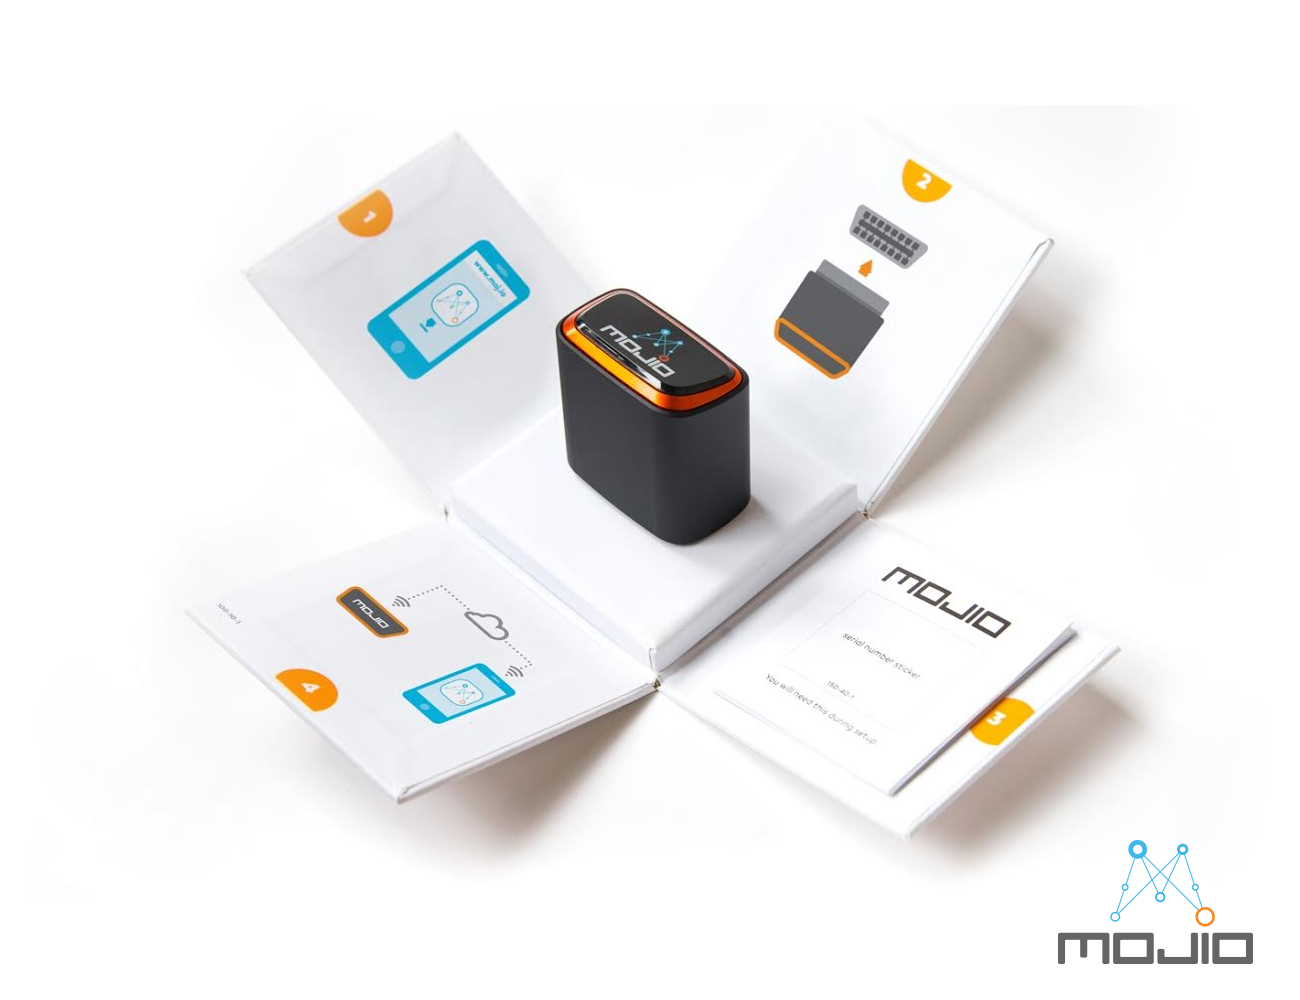 Mojio – Turn Your Vehicle into an Internet Connected Car